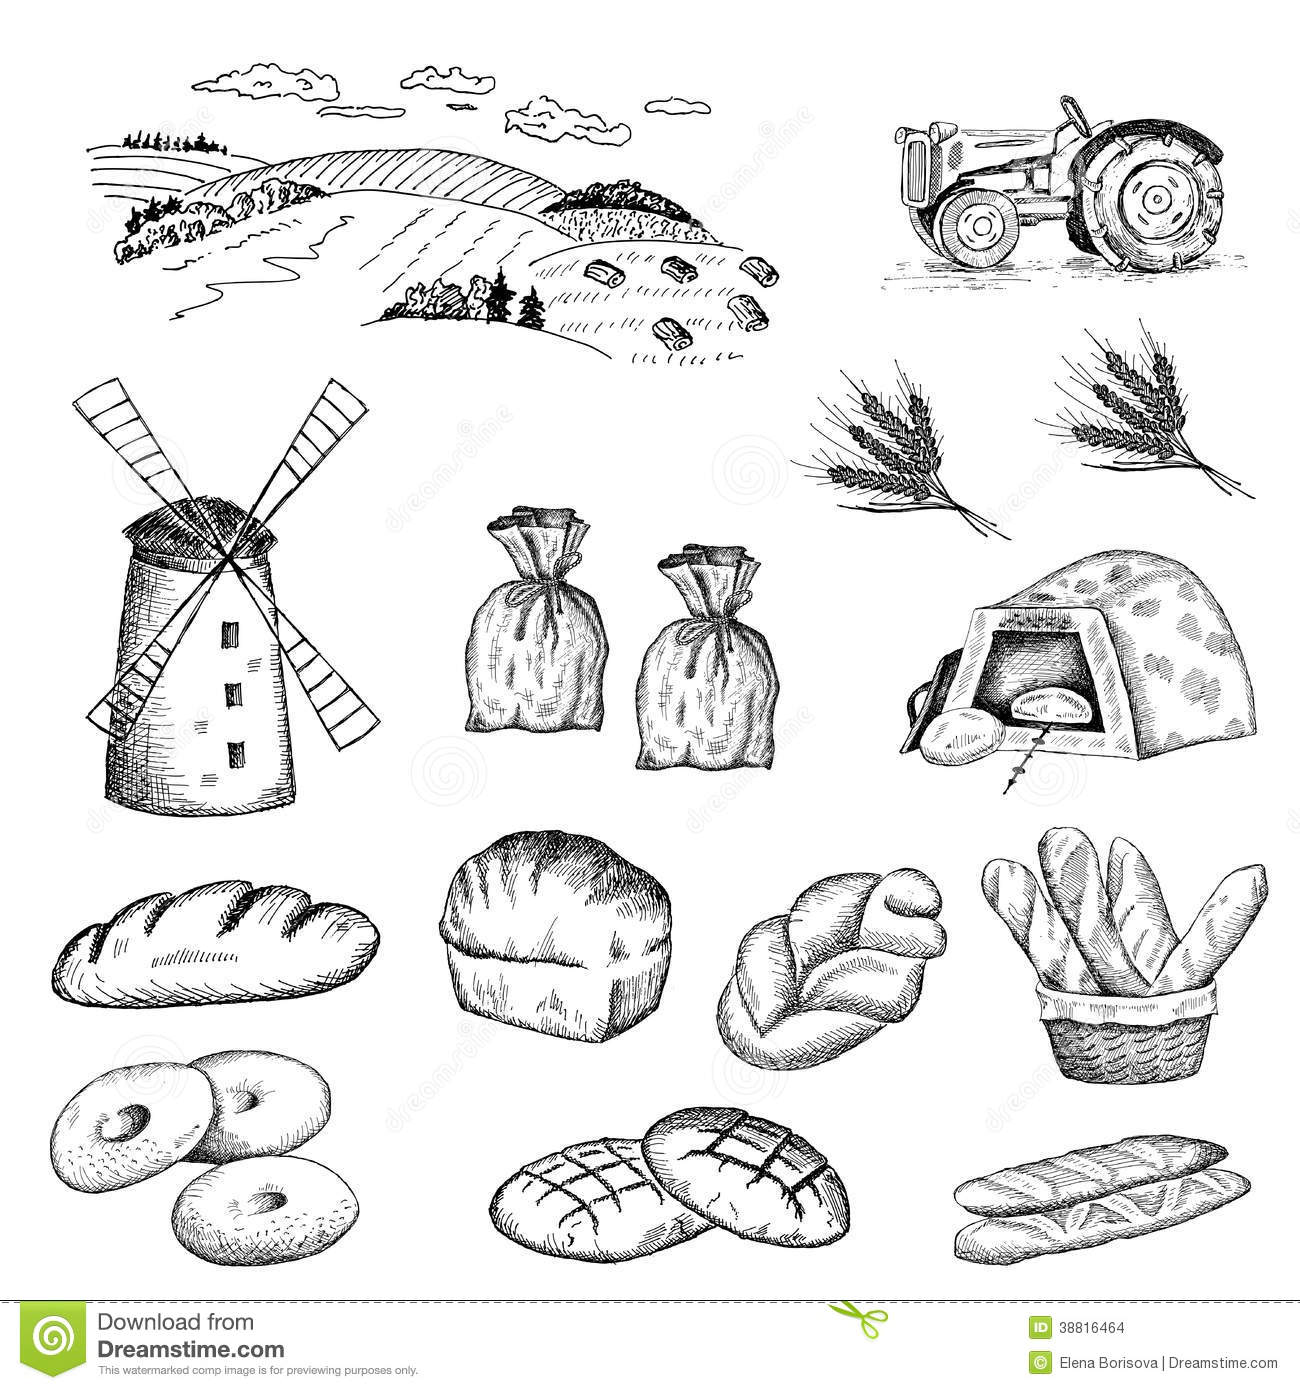 Cultivation of wheat and bread baking